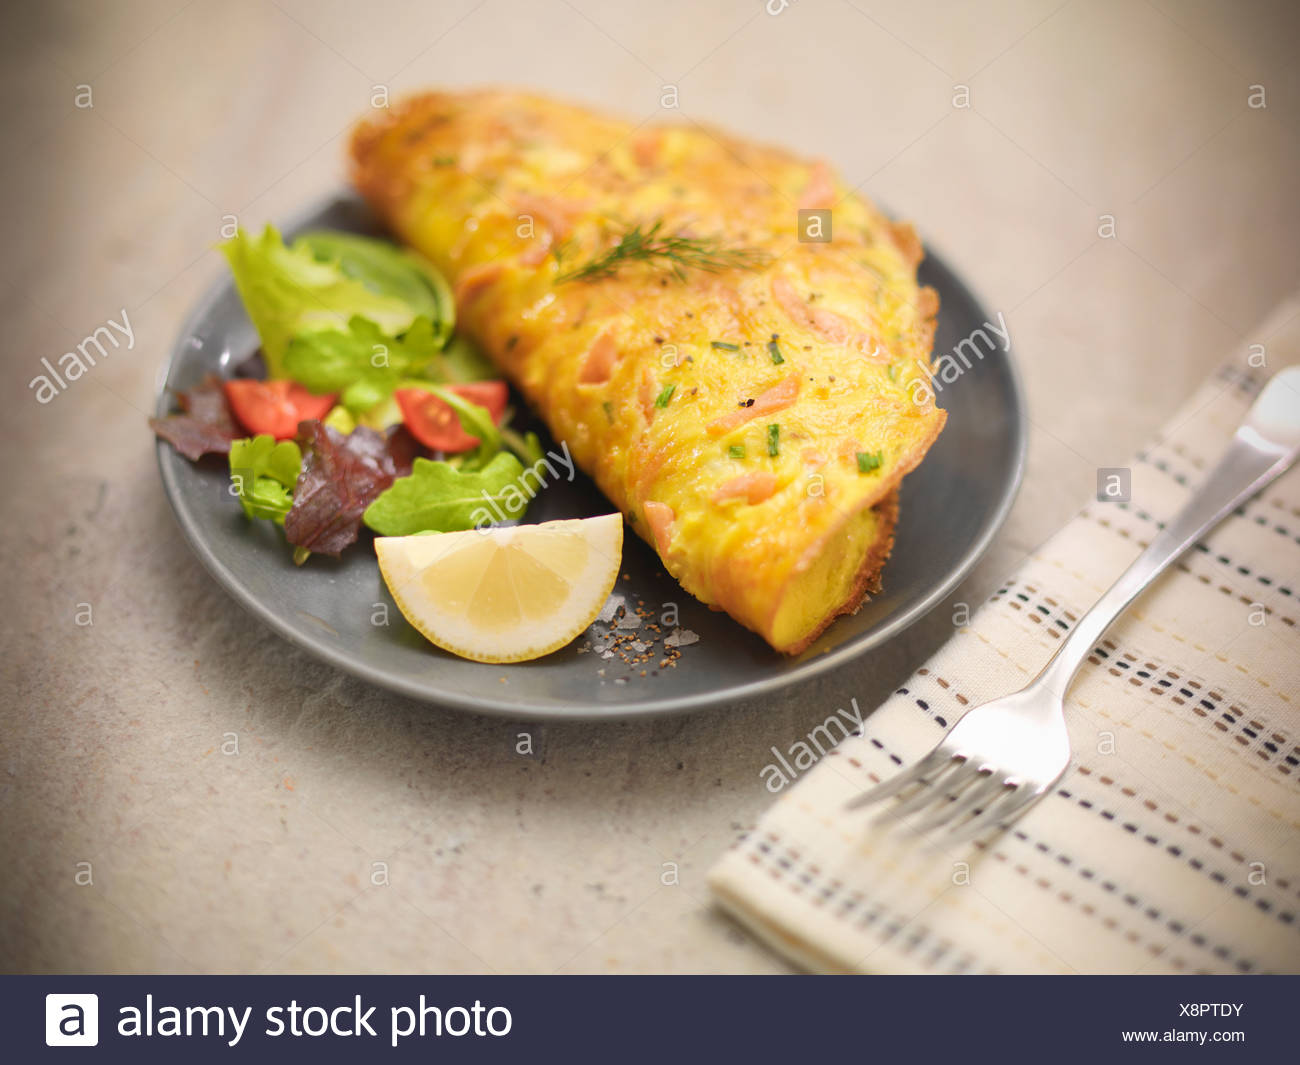 Plate of salmon omelet and salad - Stock Image